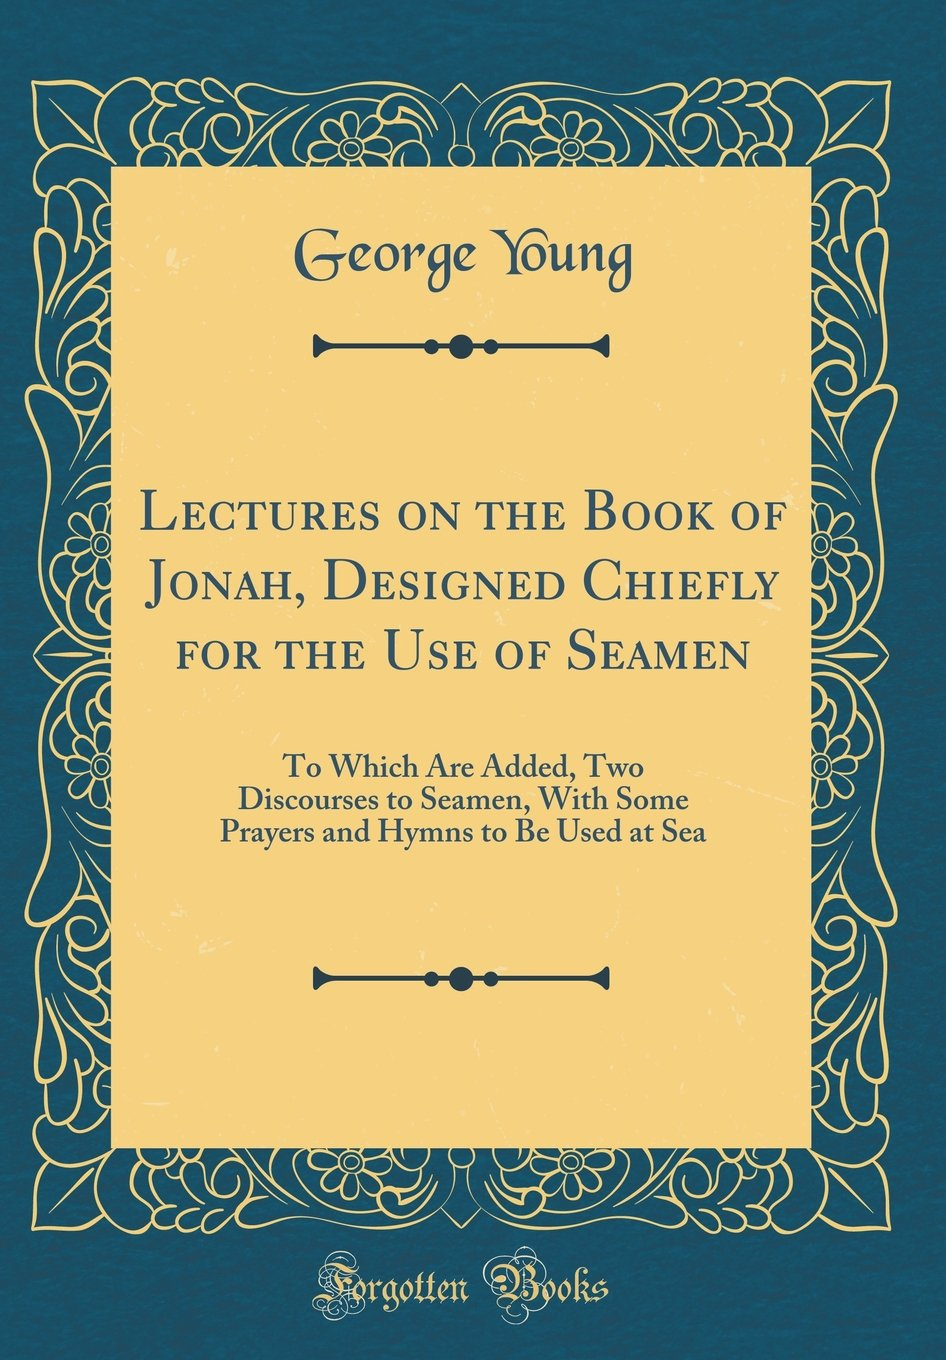 Read Online Lectures on the Book of Jonah, Designed Chiefly for the Use of Seamen: To Which Are Added, Two Discourses to Seamen, With Some Prayers and Hymns to Be Used at Sea (Classic Reprint) ebook